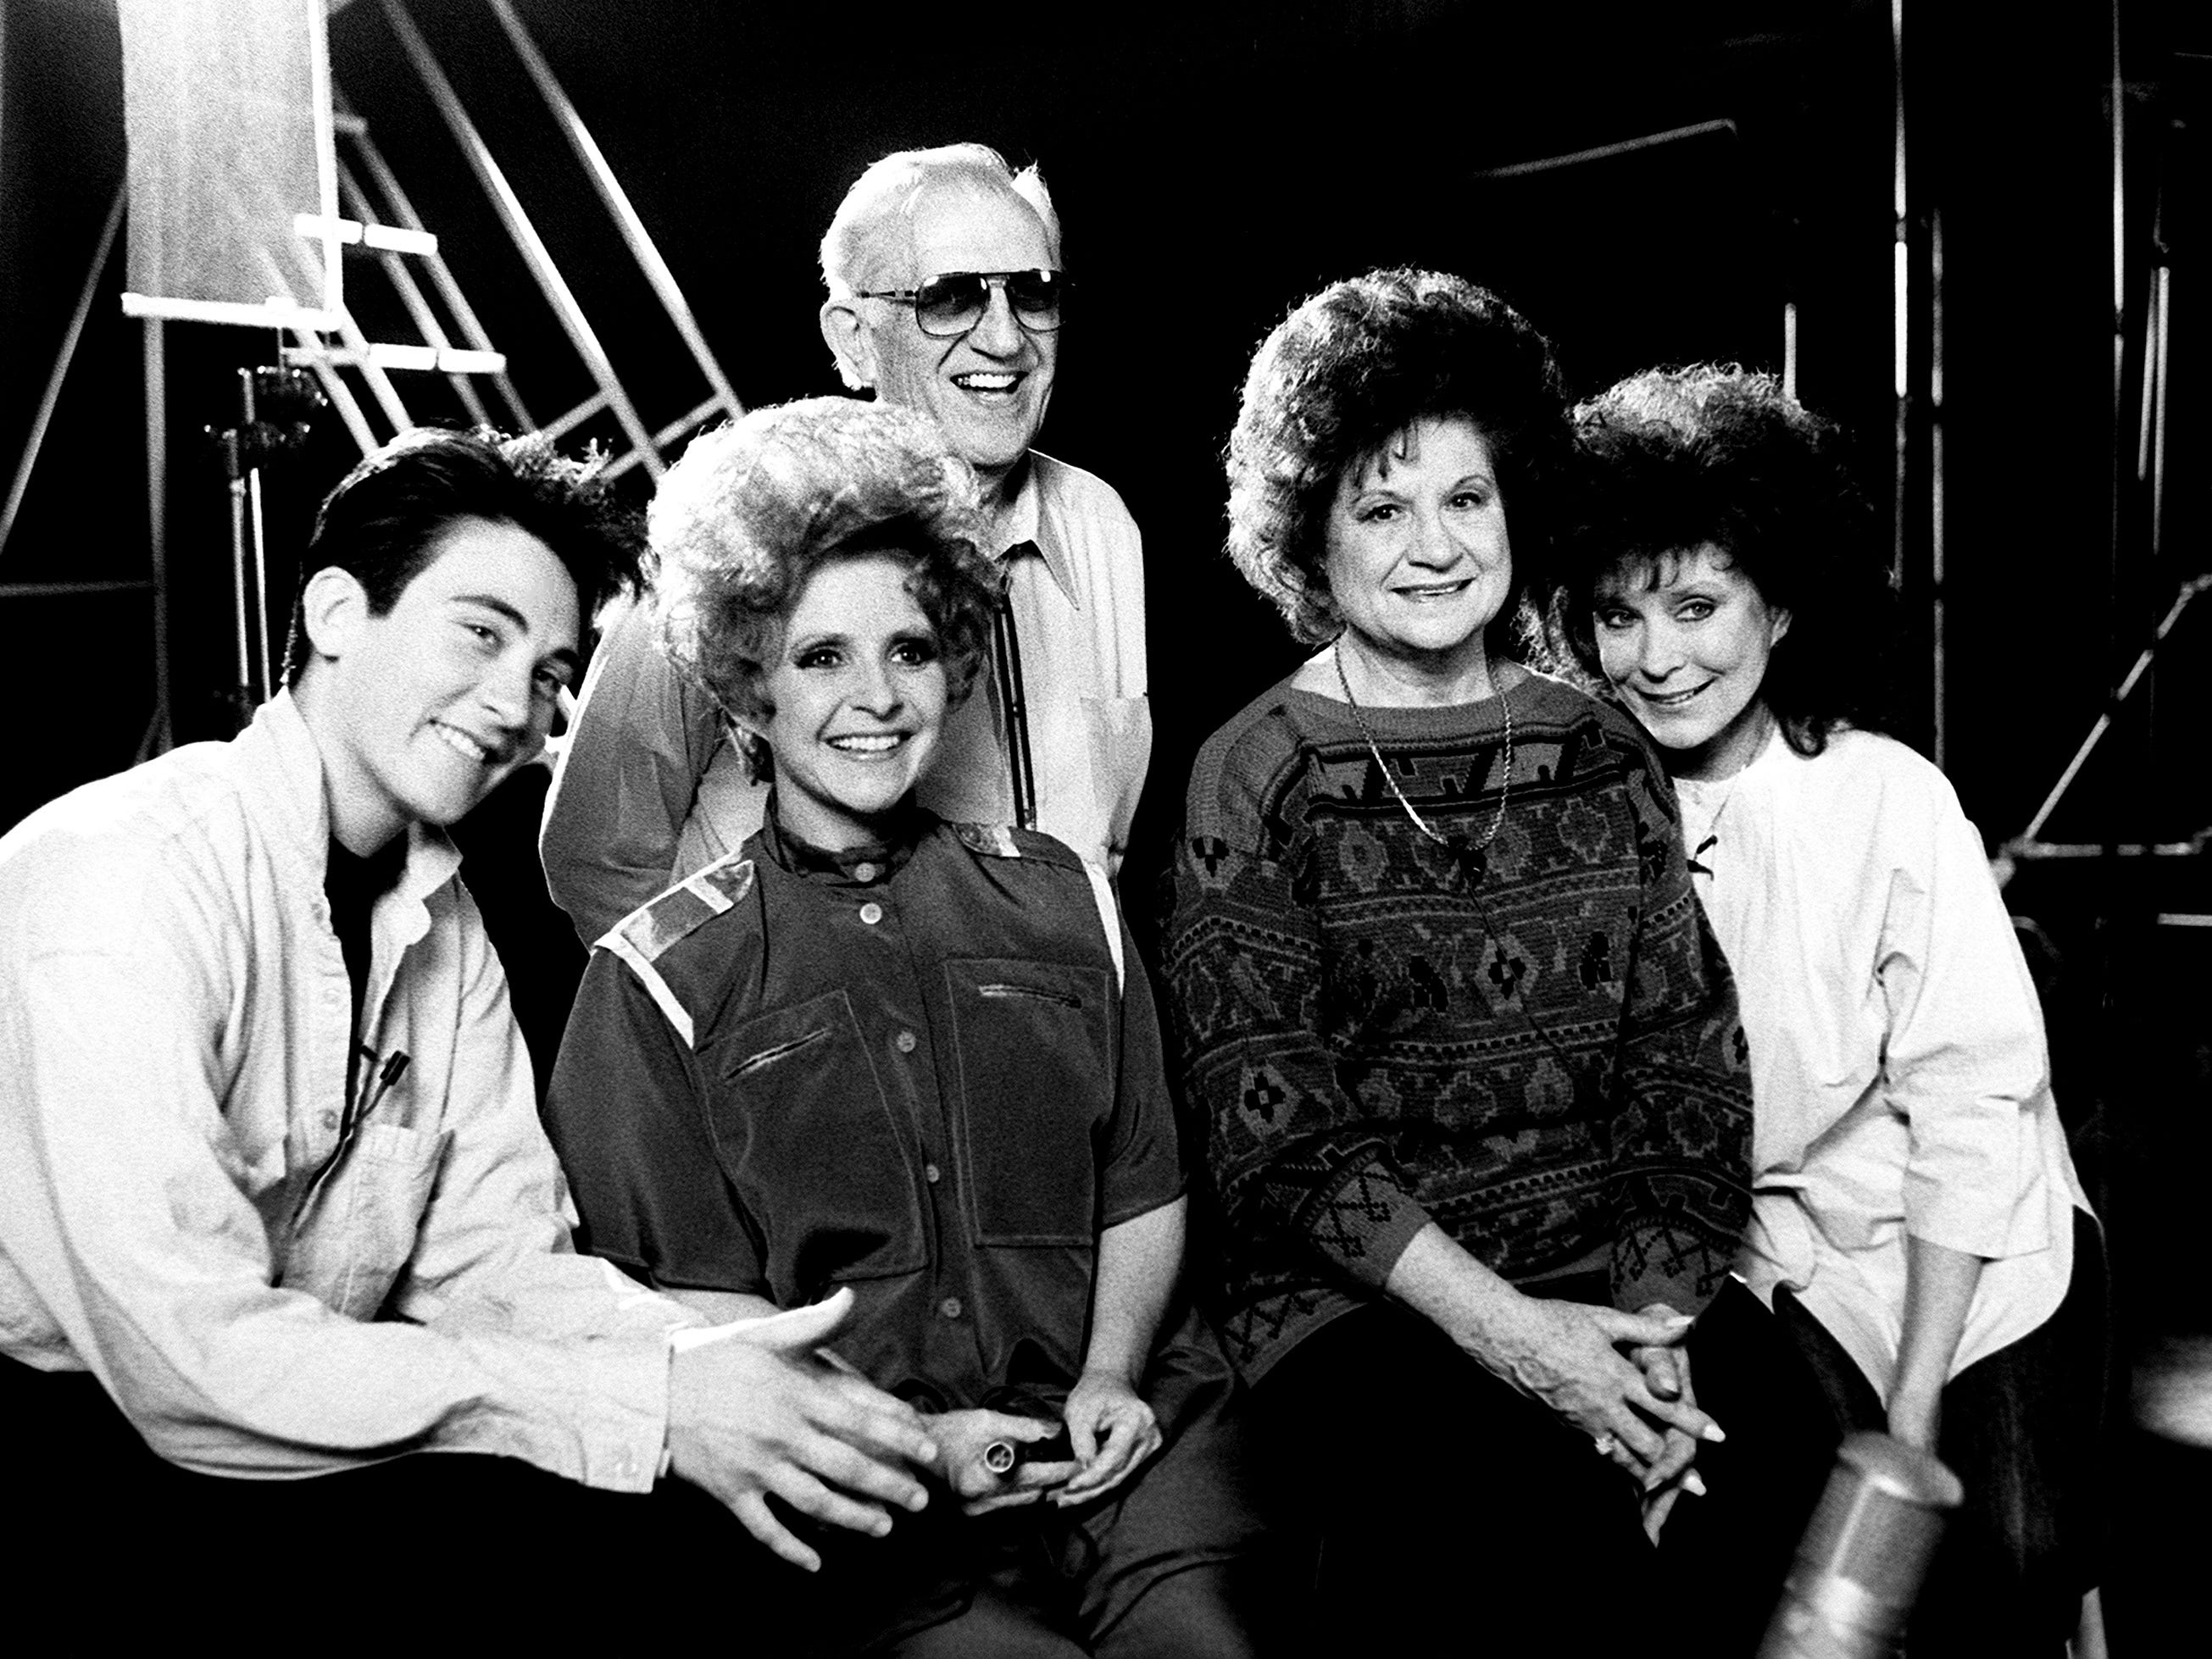 Canadian country star K.D. Lang, left, pose with legendary vocalists Brenda Lee, Kitty Wells, Loretta Lynn and producer Owen Bradley, in back, April 4, 1988. The four singers got together in Bradley's recording studio to make a music video of a medley they recorded for Lang's next album.